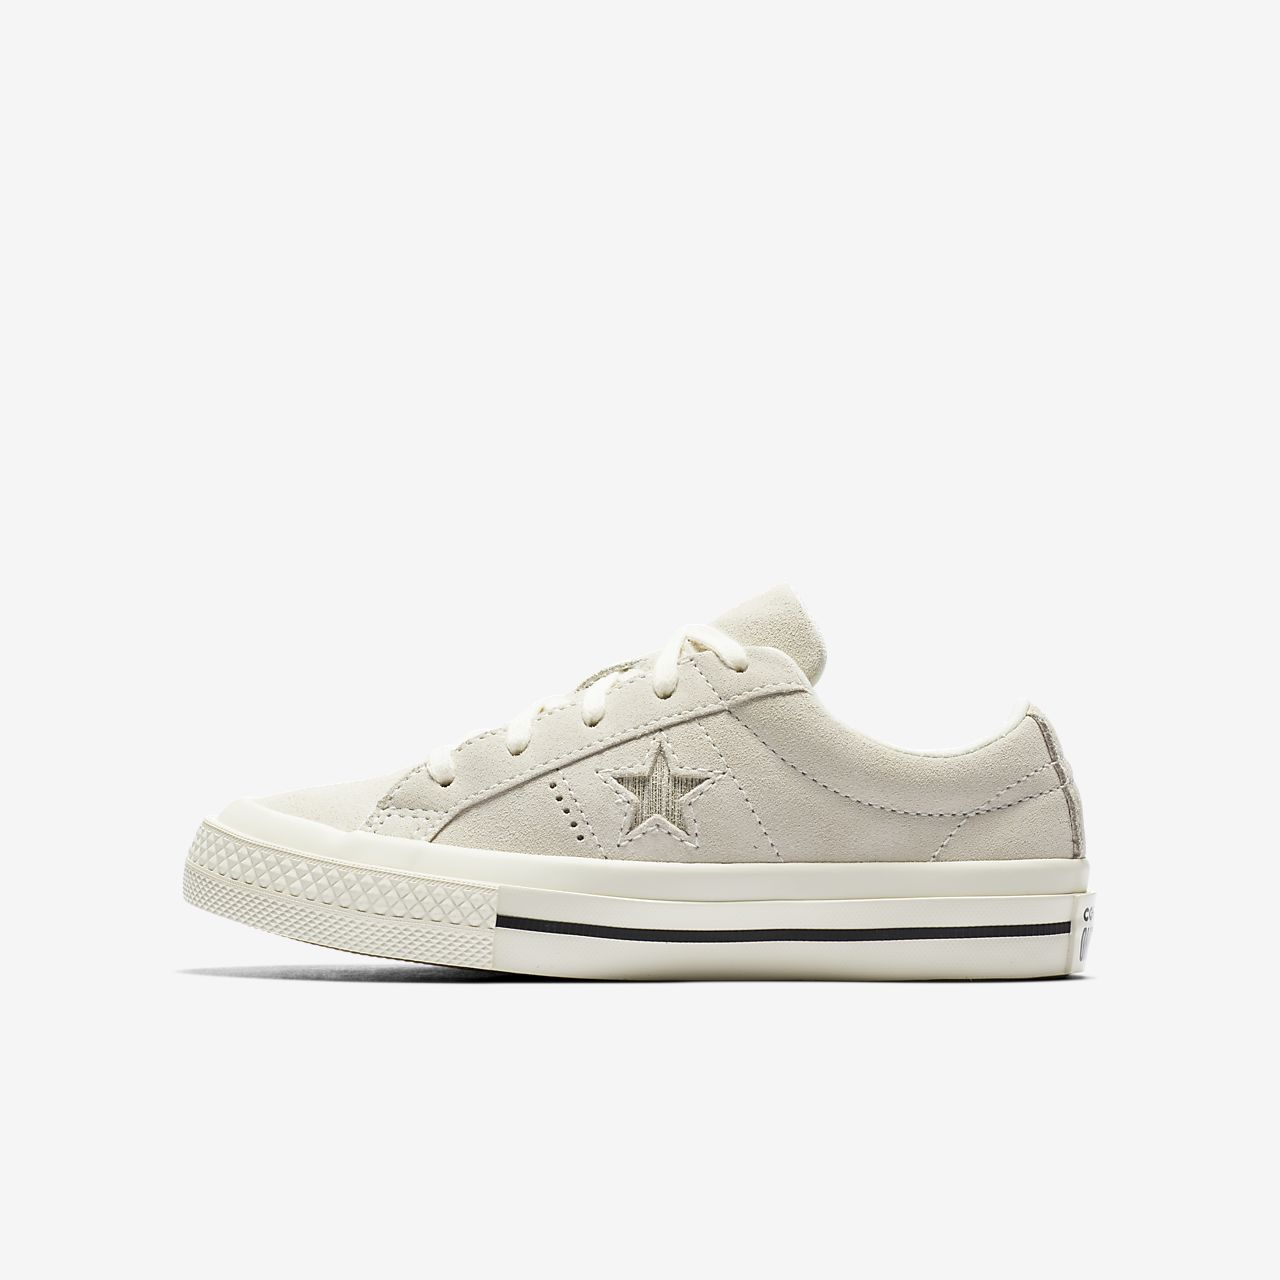 Converse One Star Precious Metal Suede Low Top Girls' Shoe